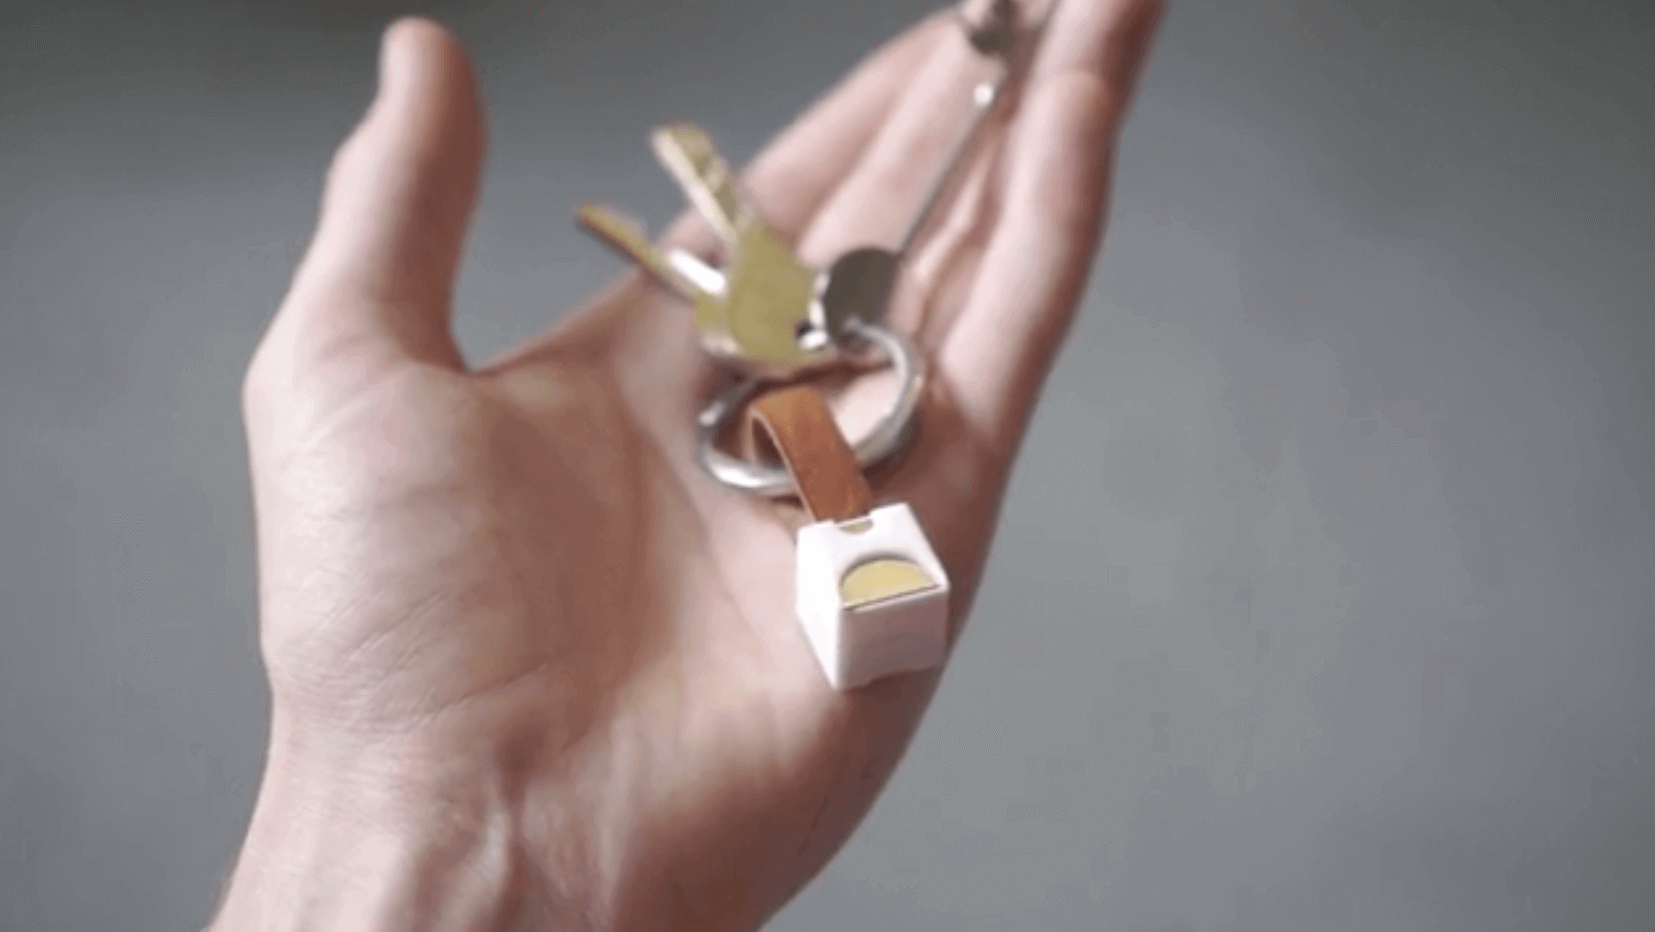 The World's Smallest 3D Printed Phone Charger | All3DP